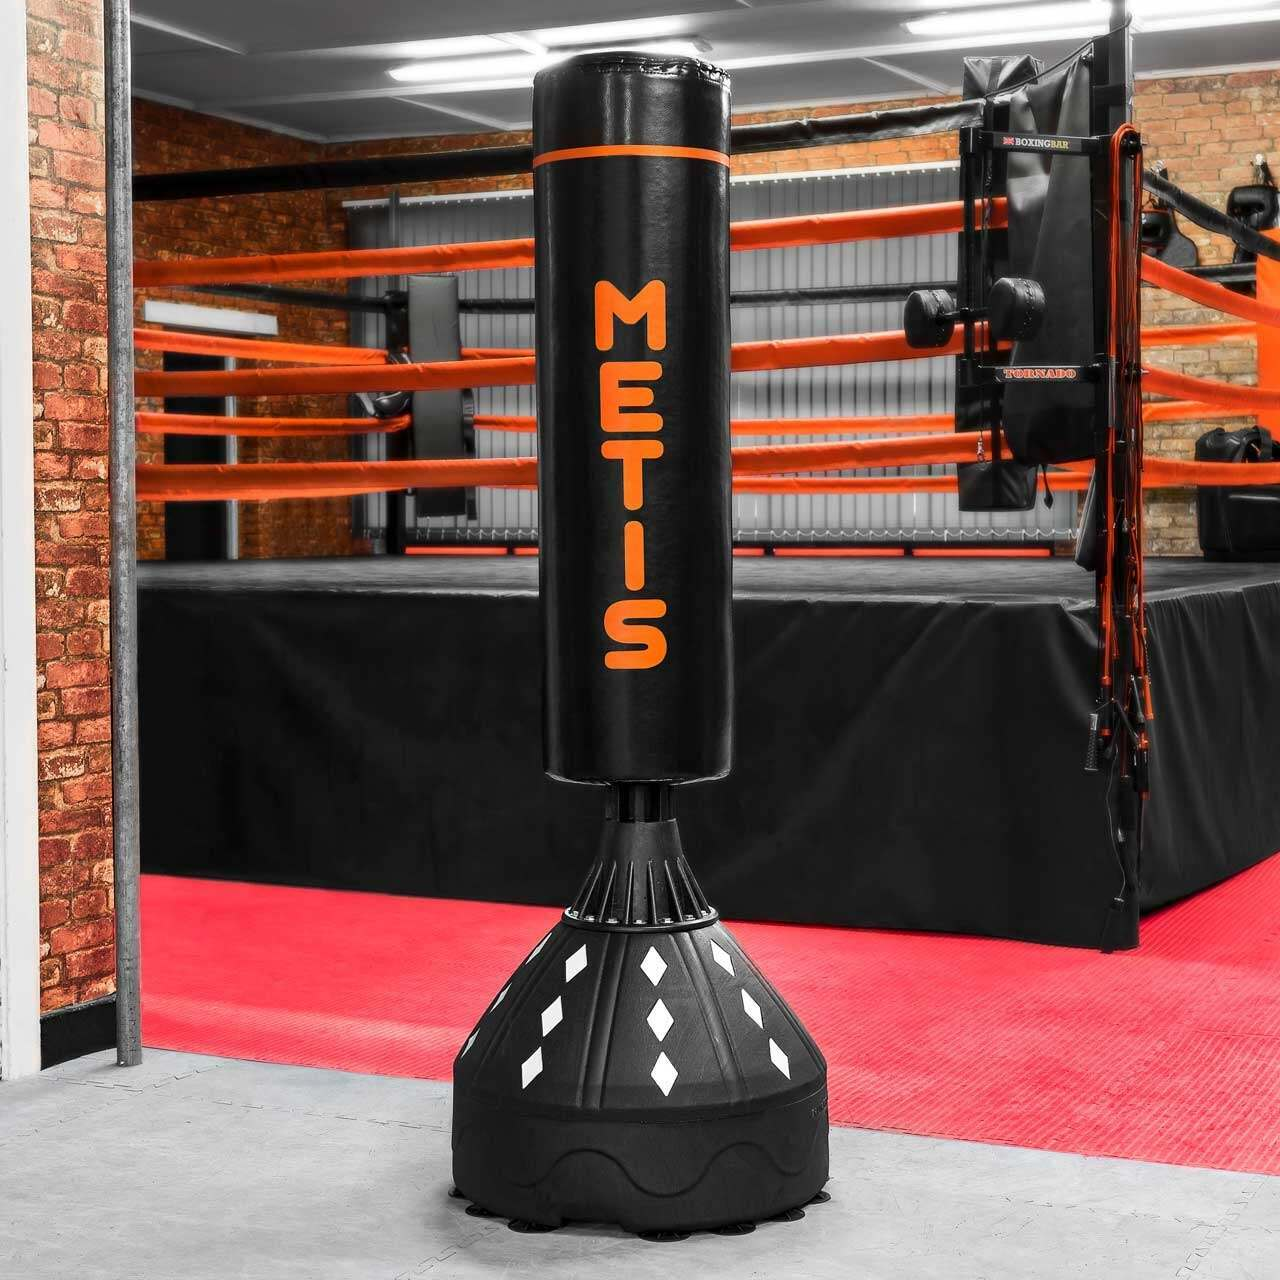 Mytra Fusion Pedestal 6ft Boxing Bag Free Standing Punching Target Boxing Stand